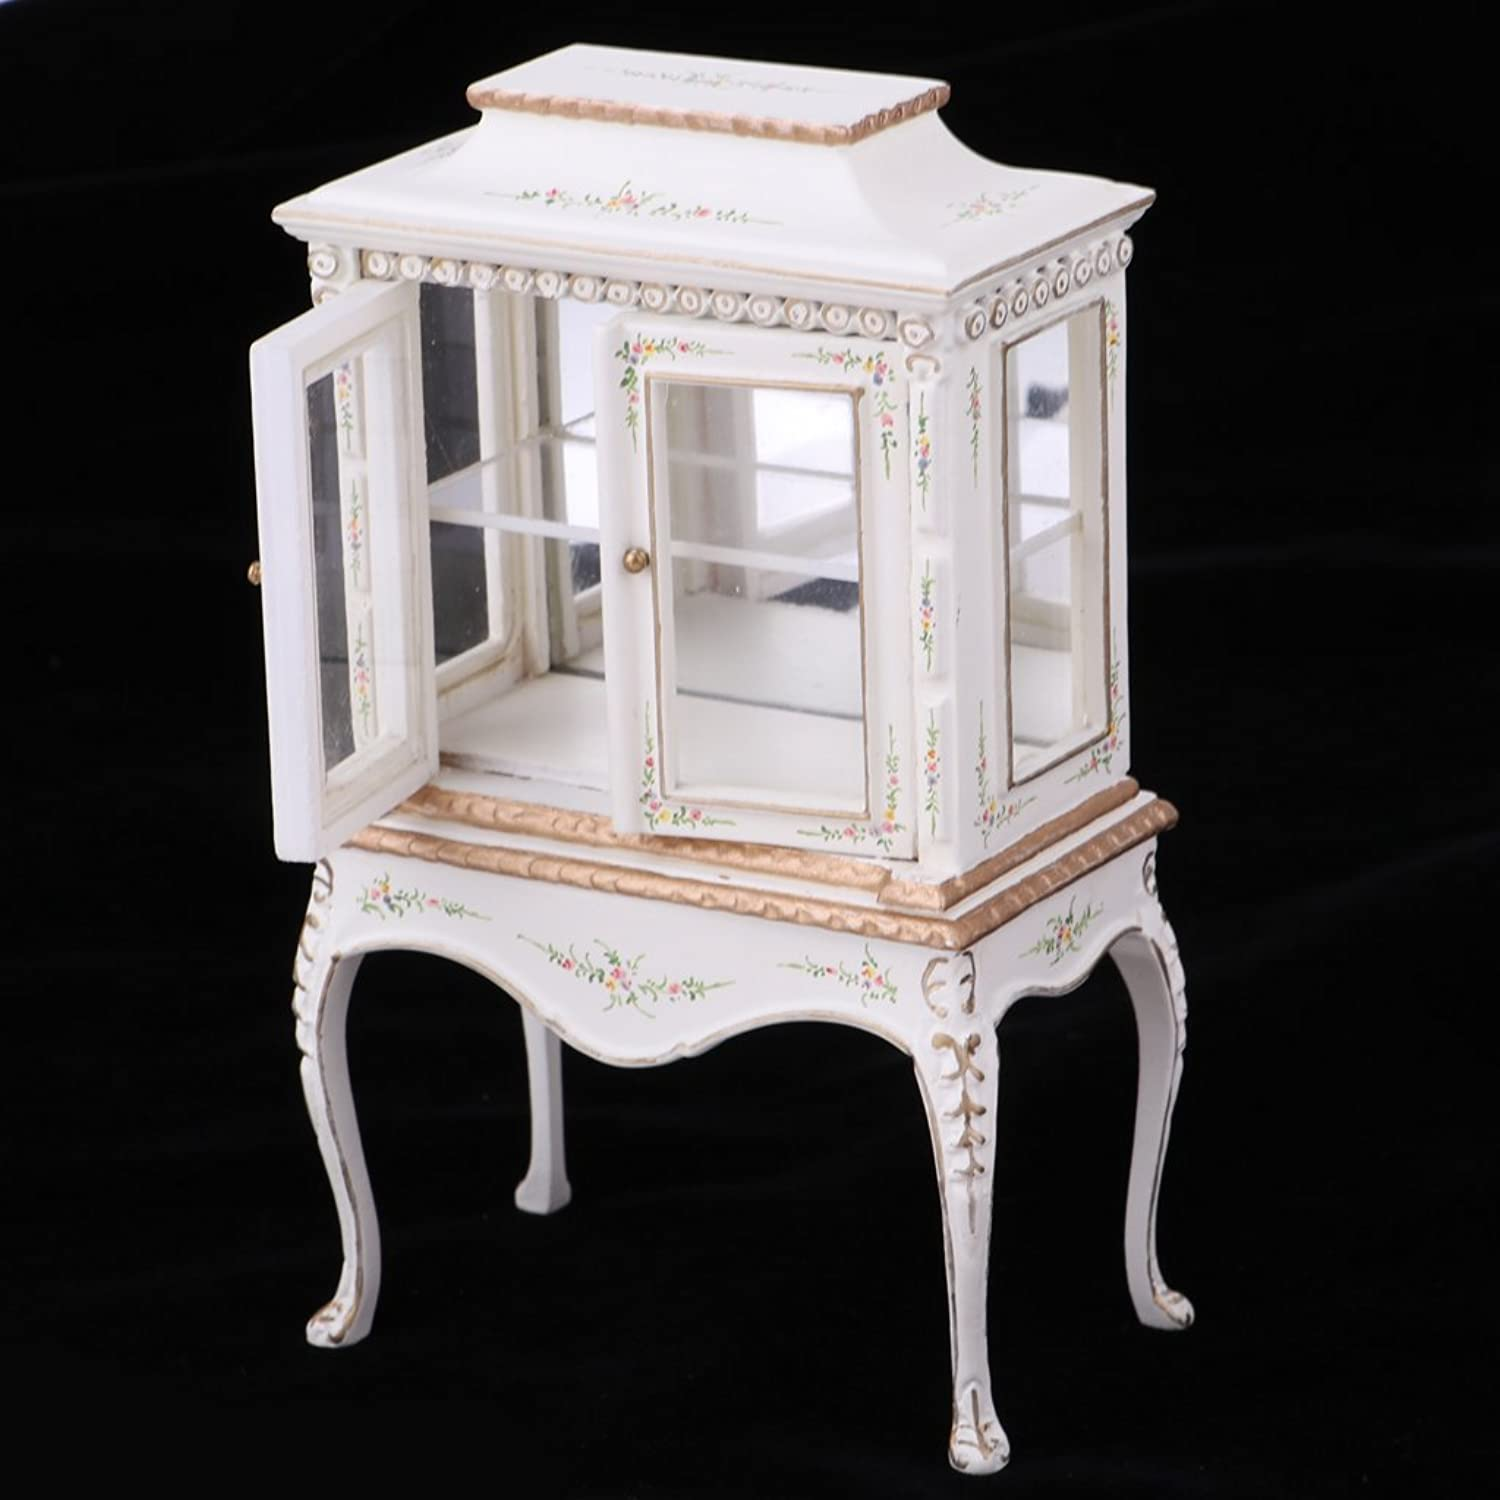 MagiDeal 1 12 Dollhouse Furniture Wood Collection Cabinet Model Miniature Living Room Accessories Decor